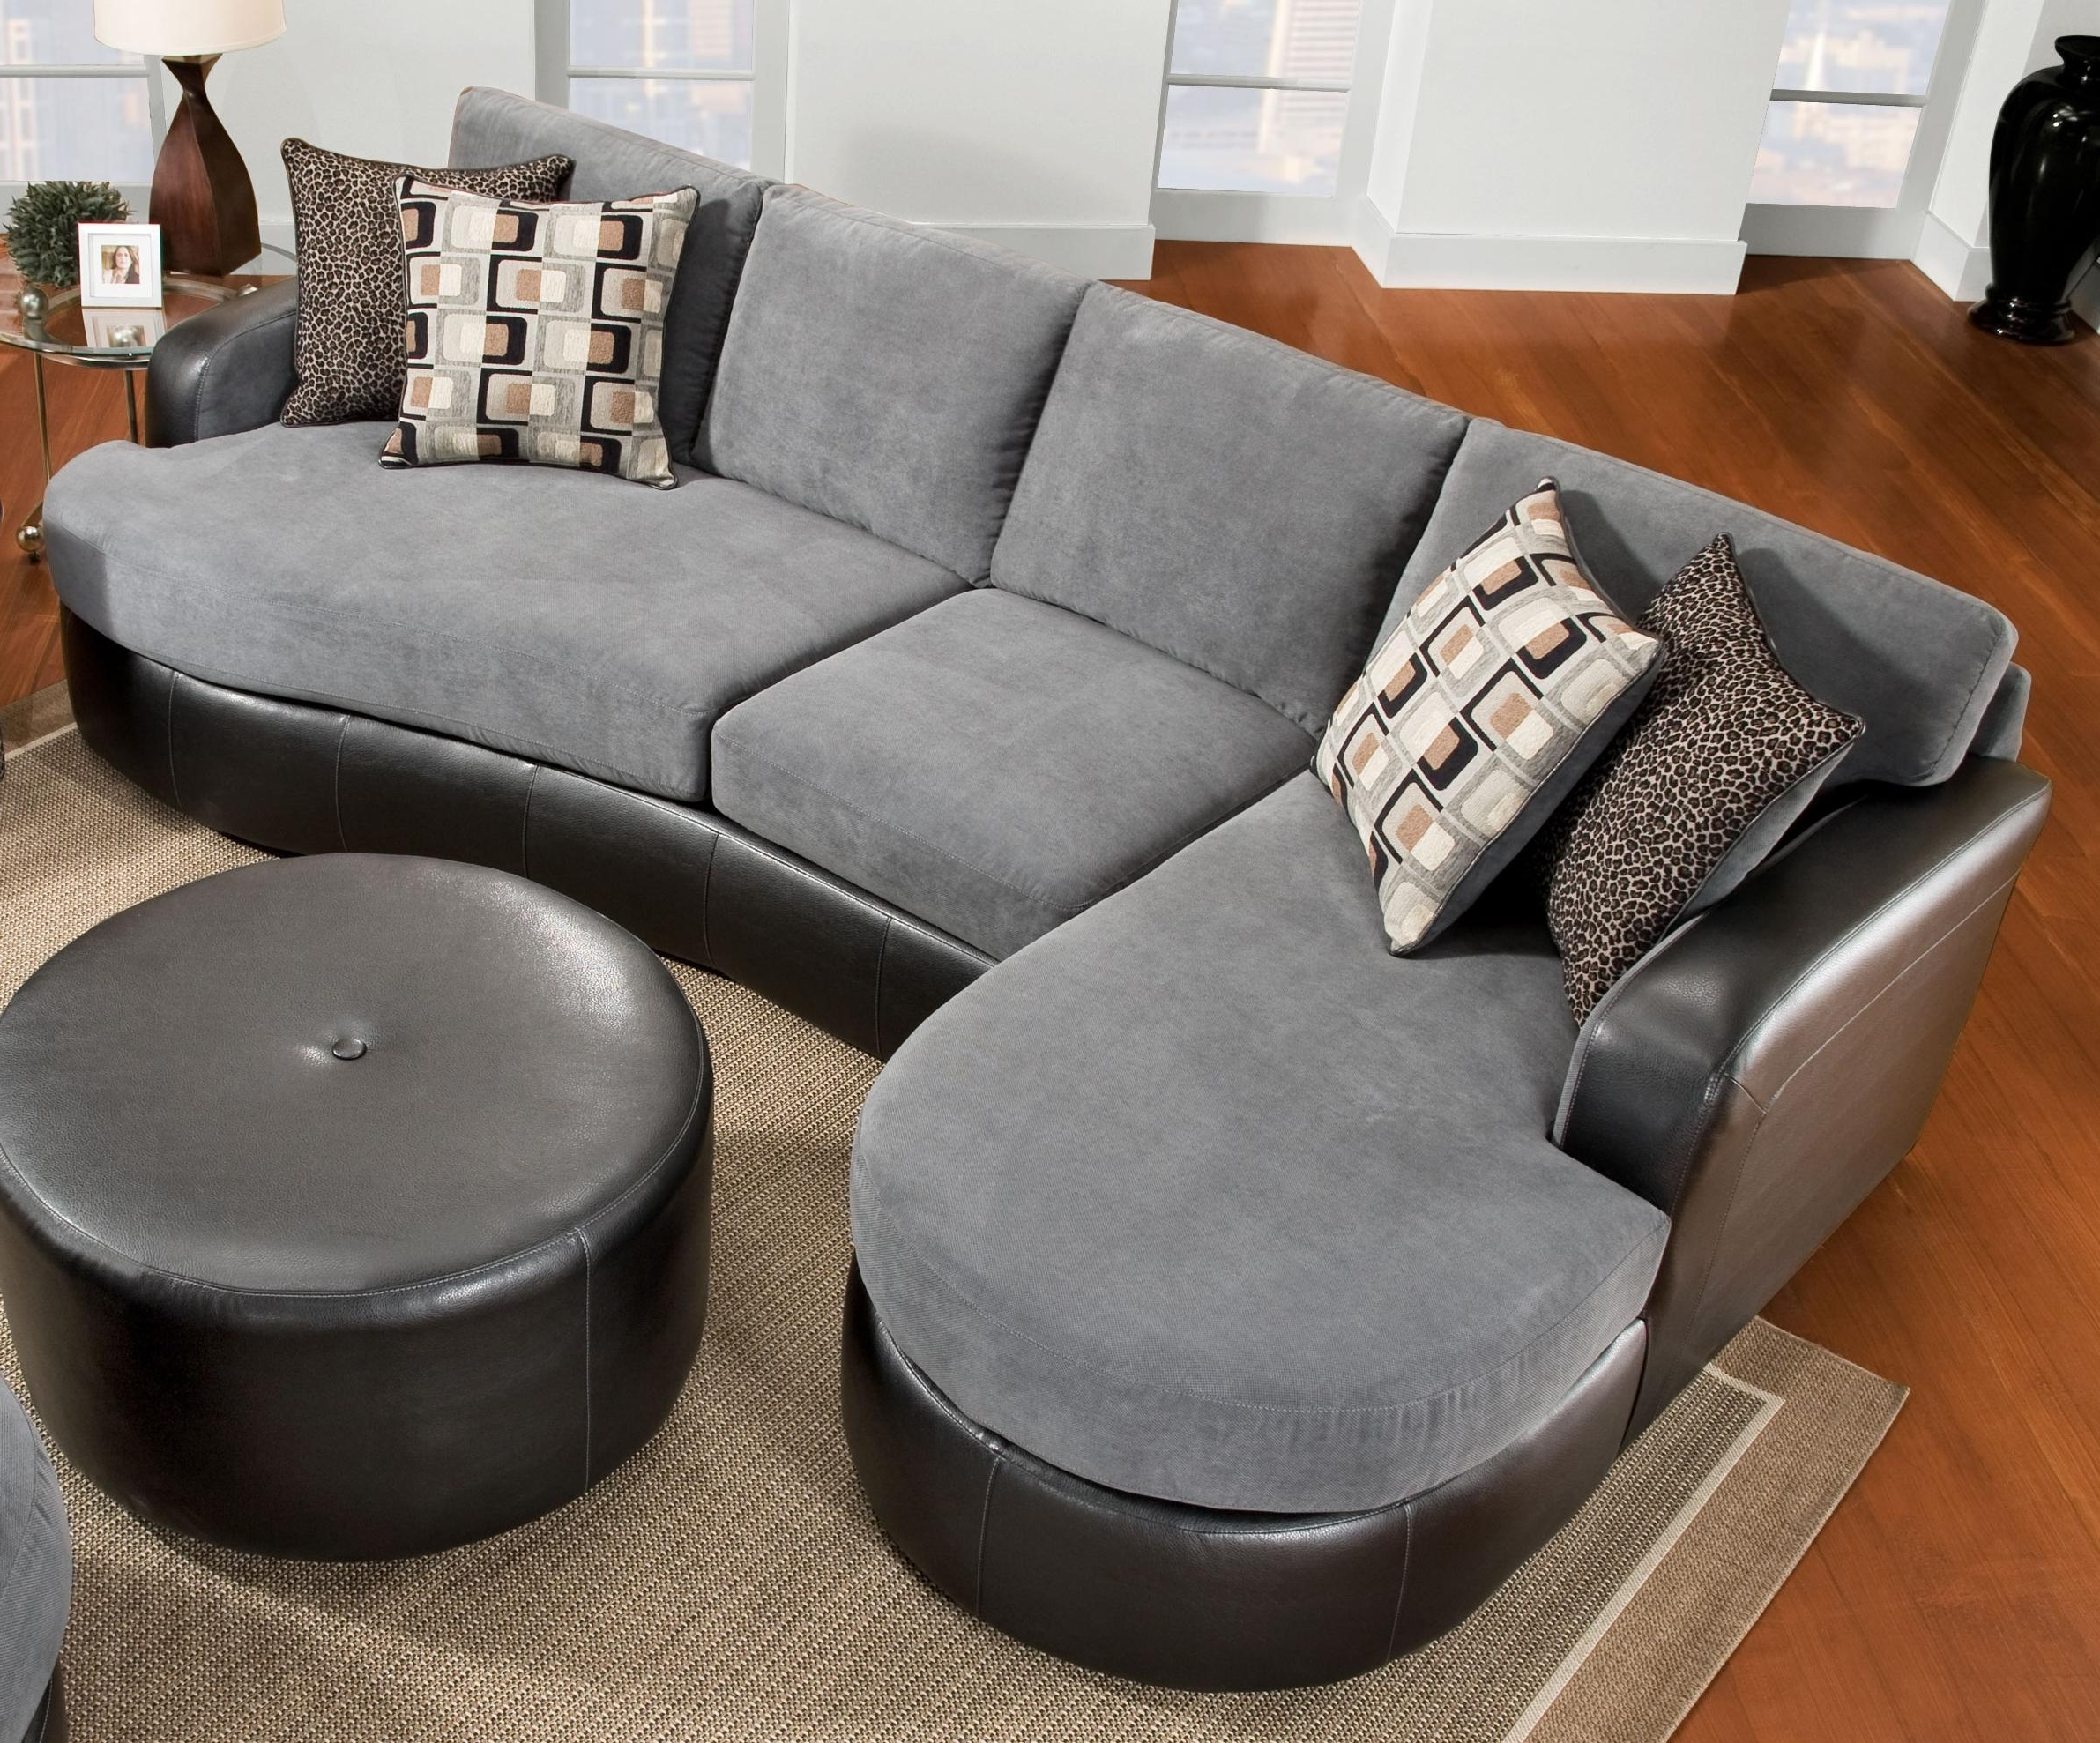 Elegant Chic Gray Velvet And Black Leather Sectional Sofa With F With Fashionable Sofas With Chaise And Ottoman (Gallery 15 of 20)